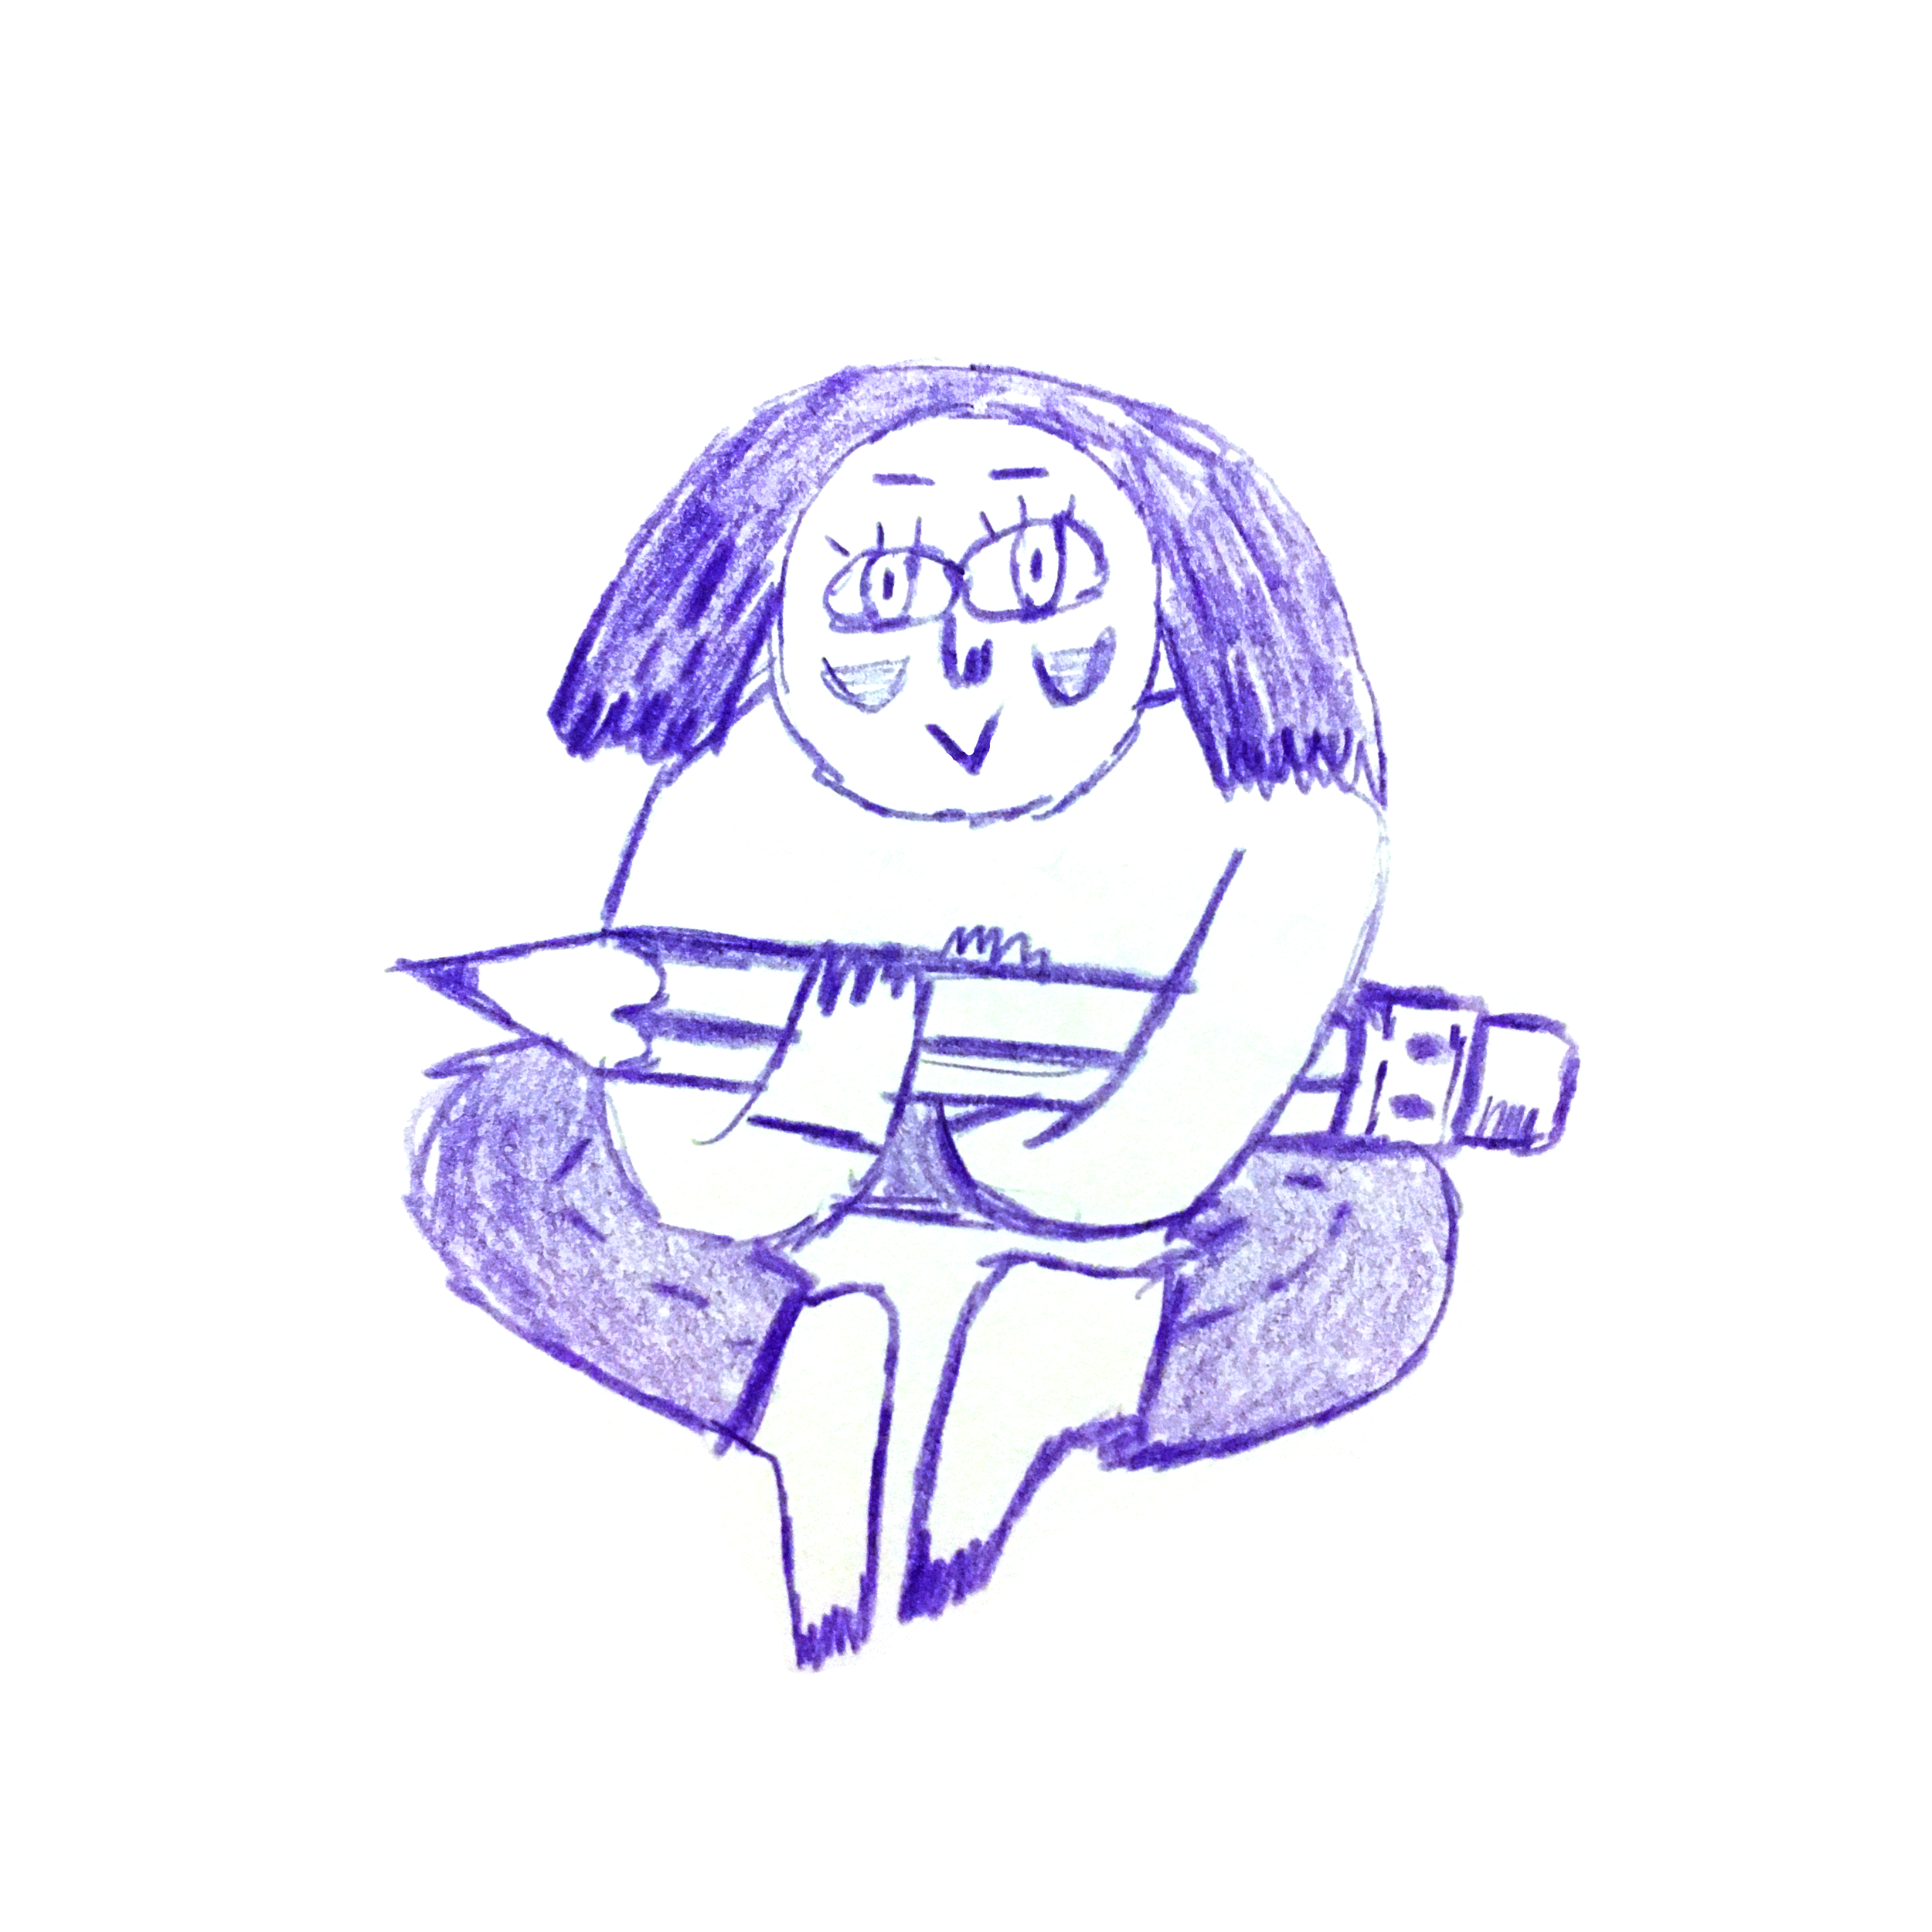 Tayla_icon2.png